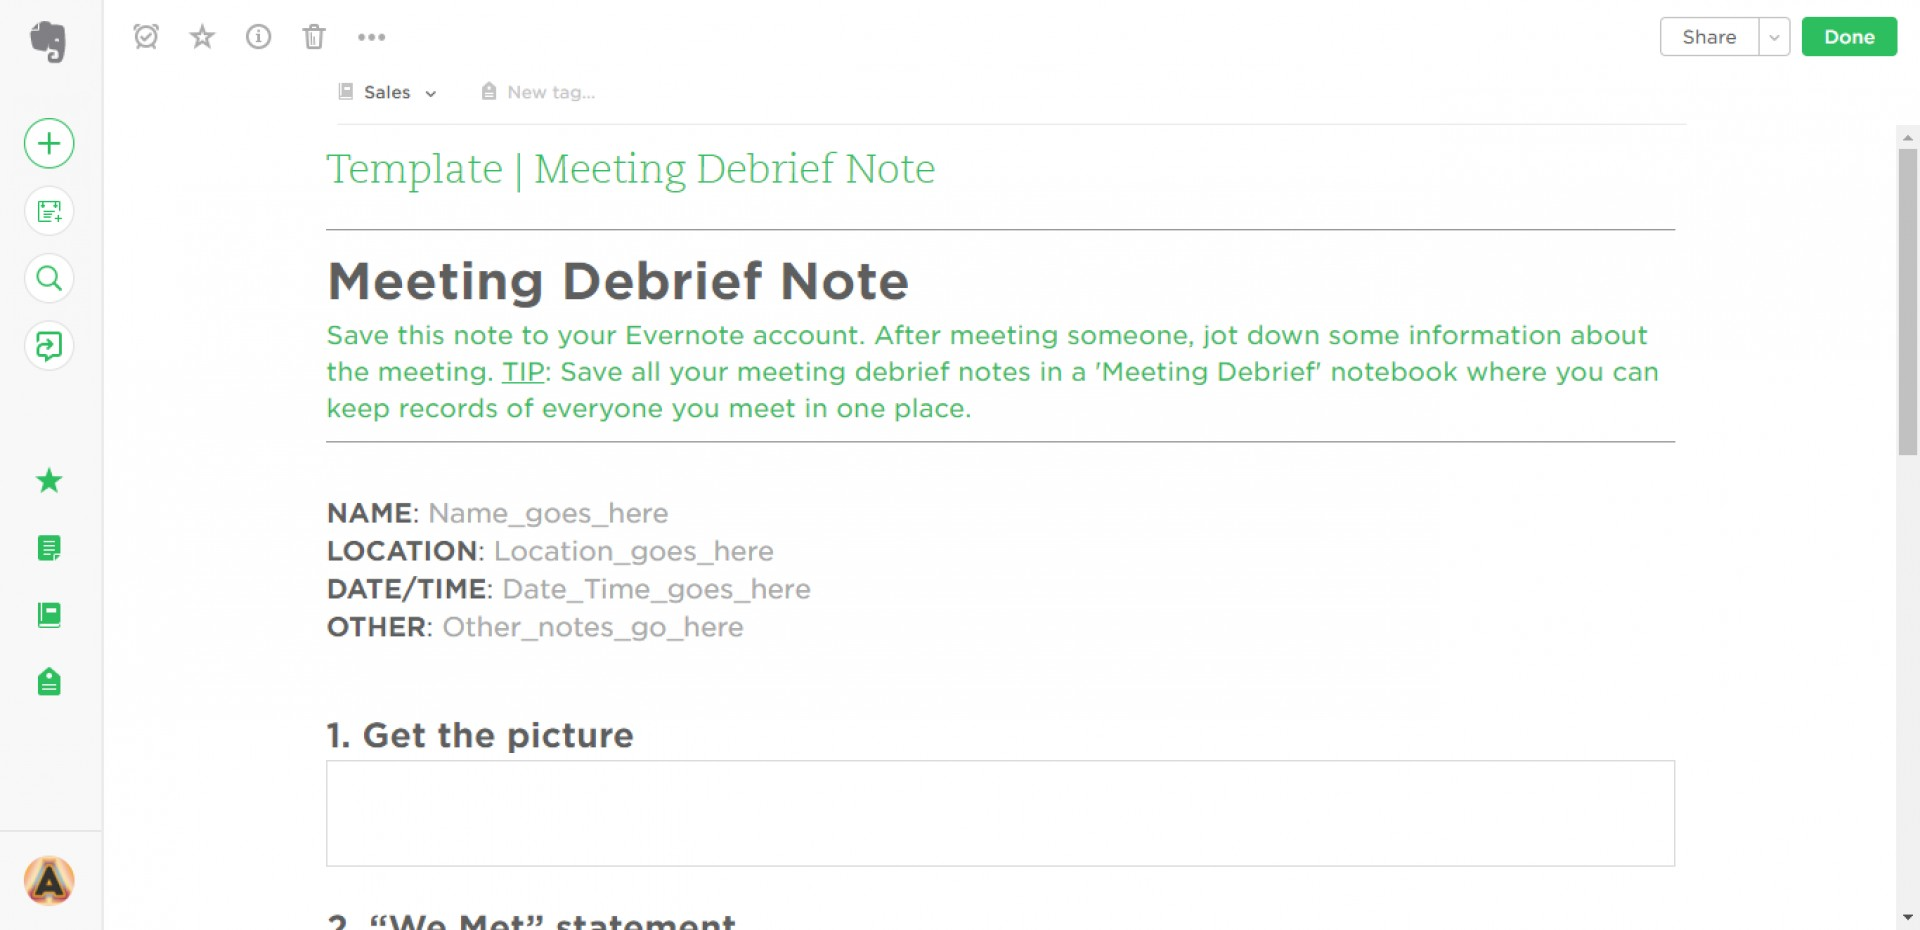 009 Meeting Debrief Evernote Templates Research Paper Note Cards Examples For Unique A Example Card Format Template 1920